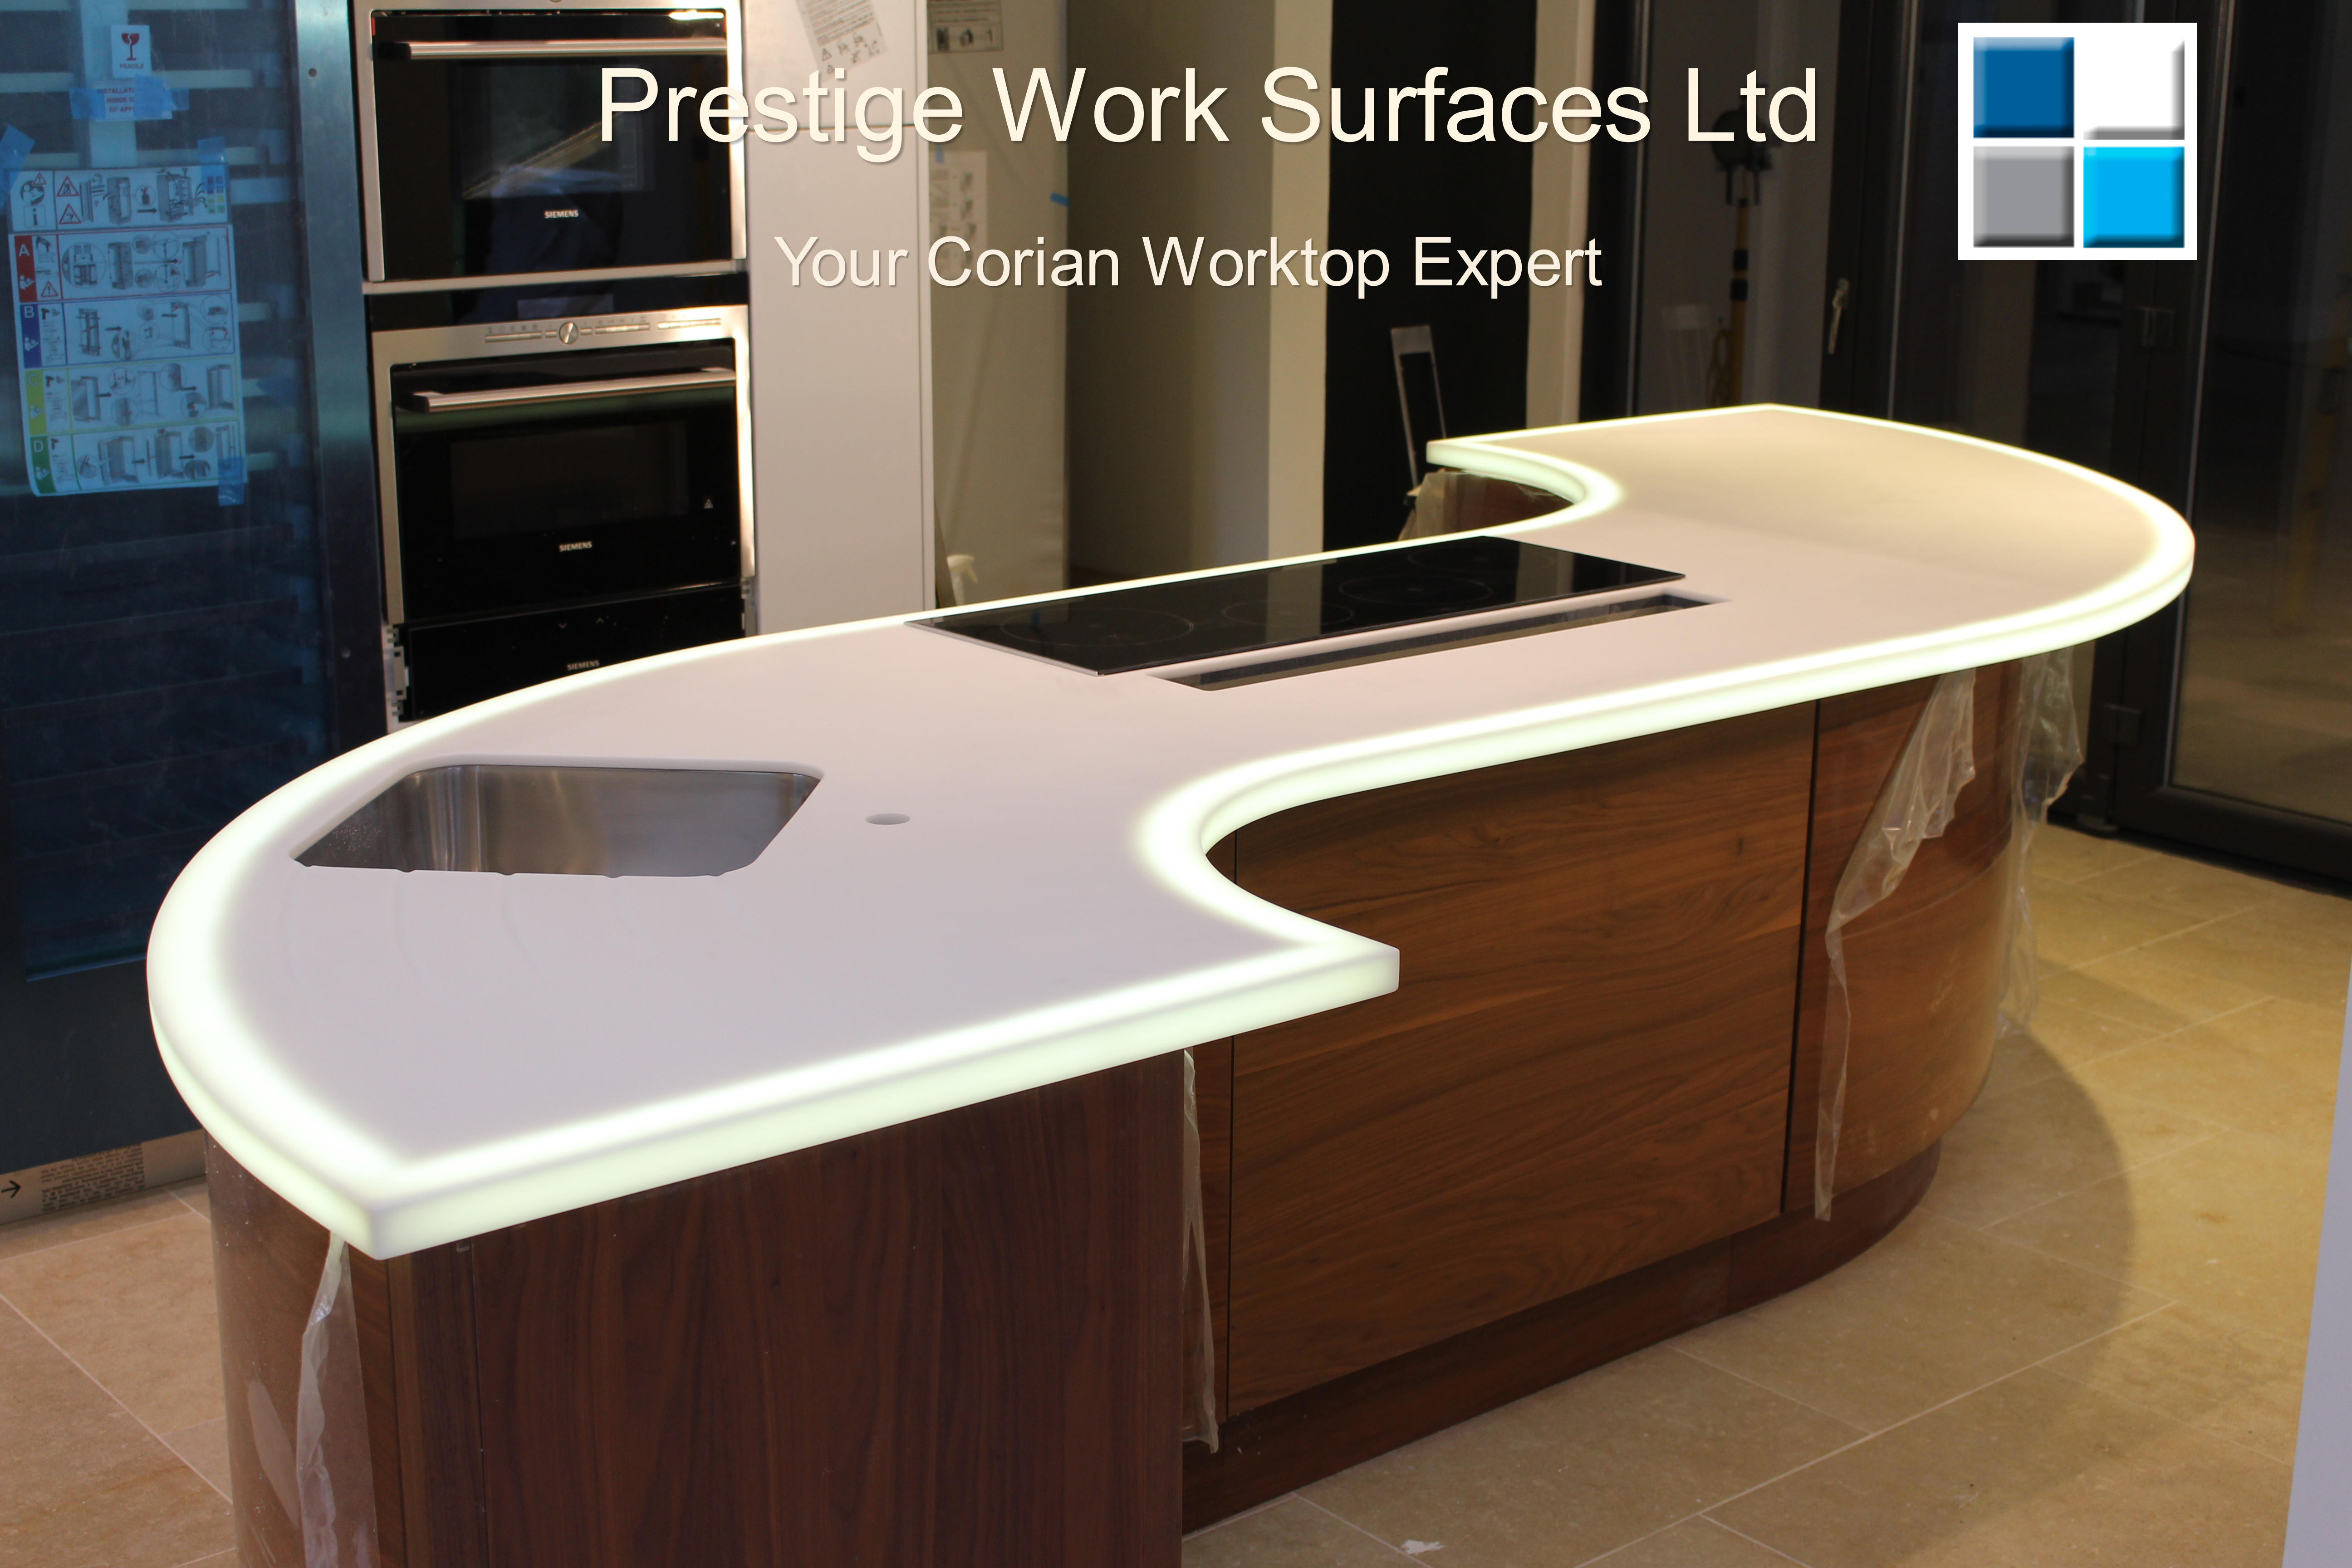 Your Corian Worktop Expert. Prestige Work Surfaces Ltd24